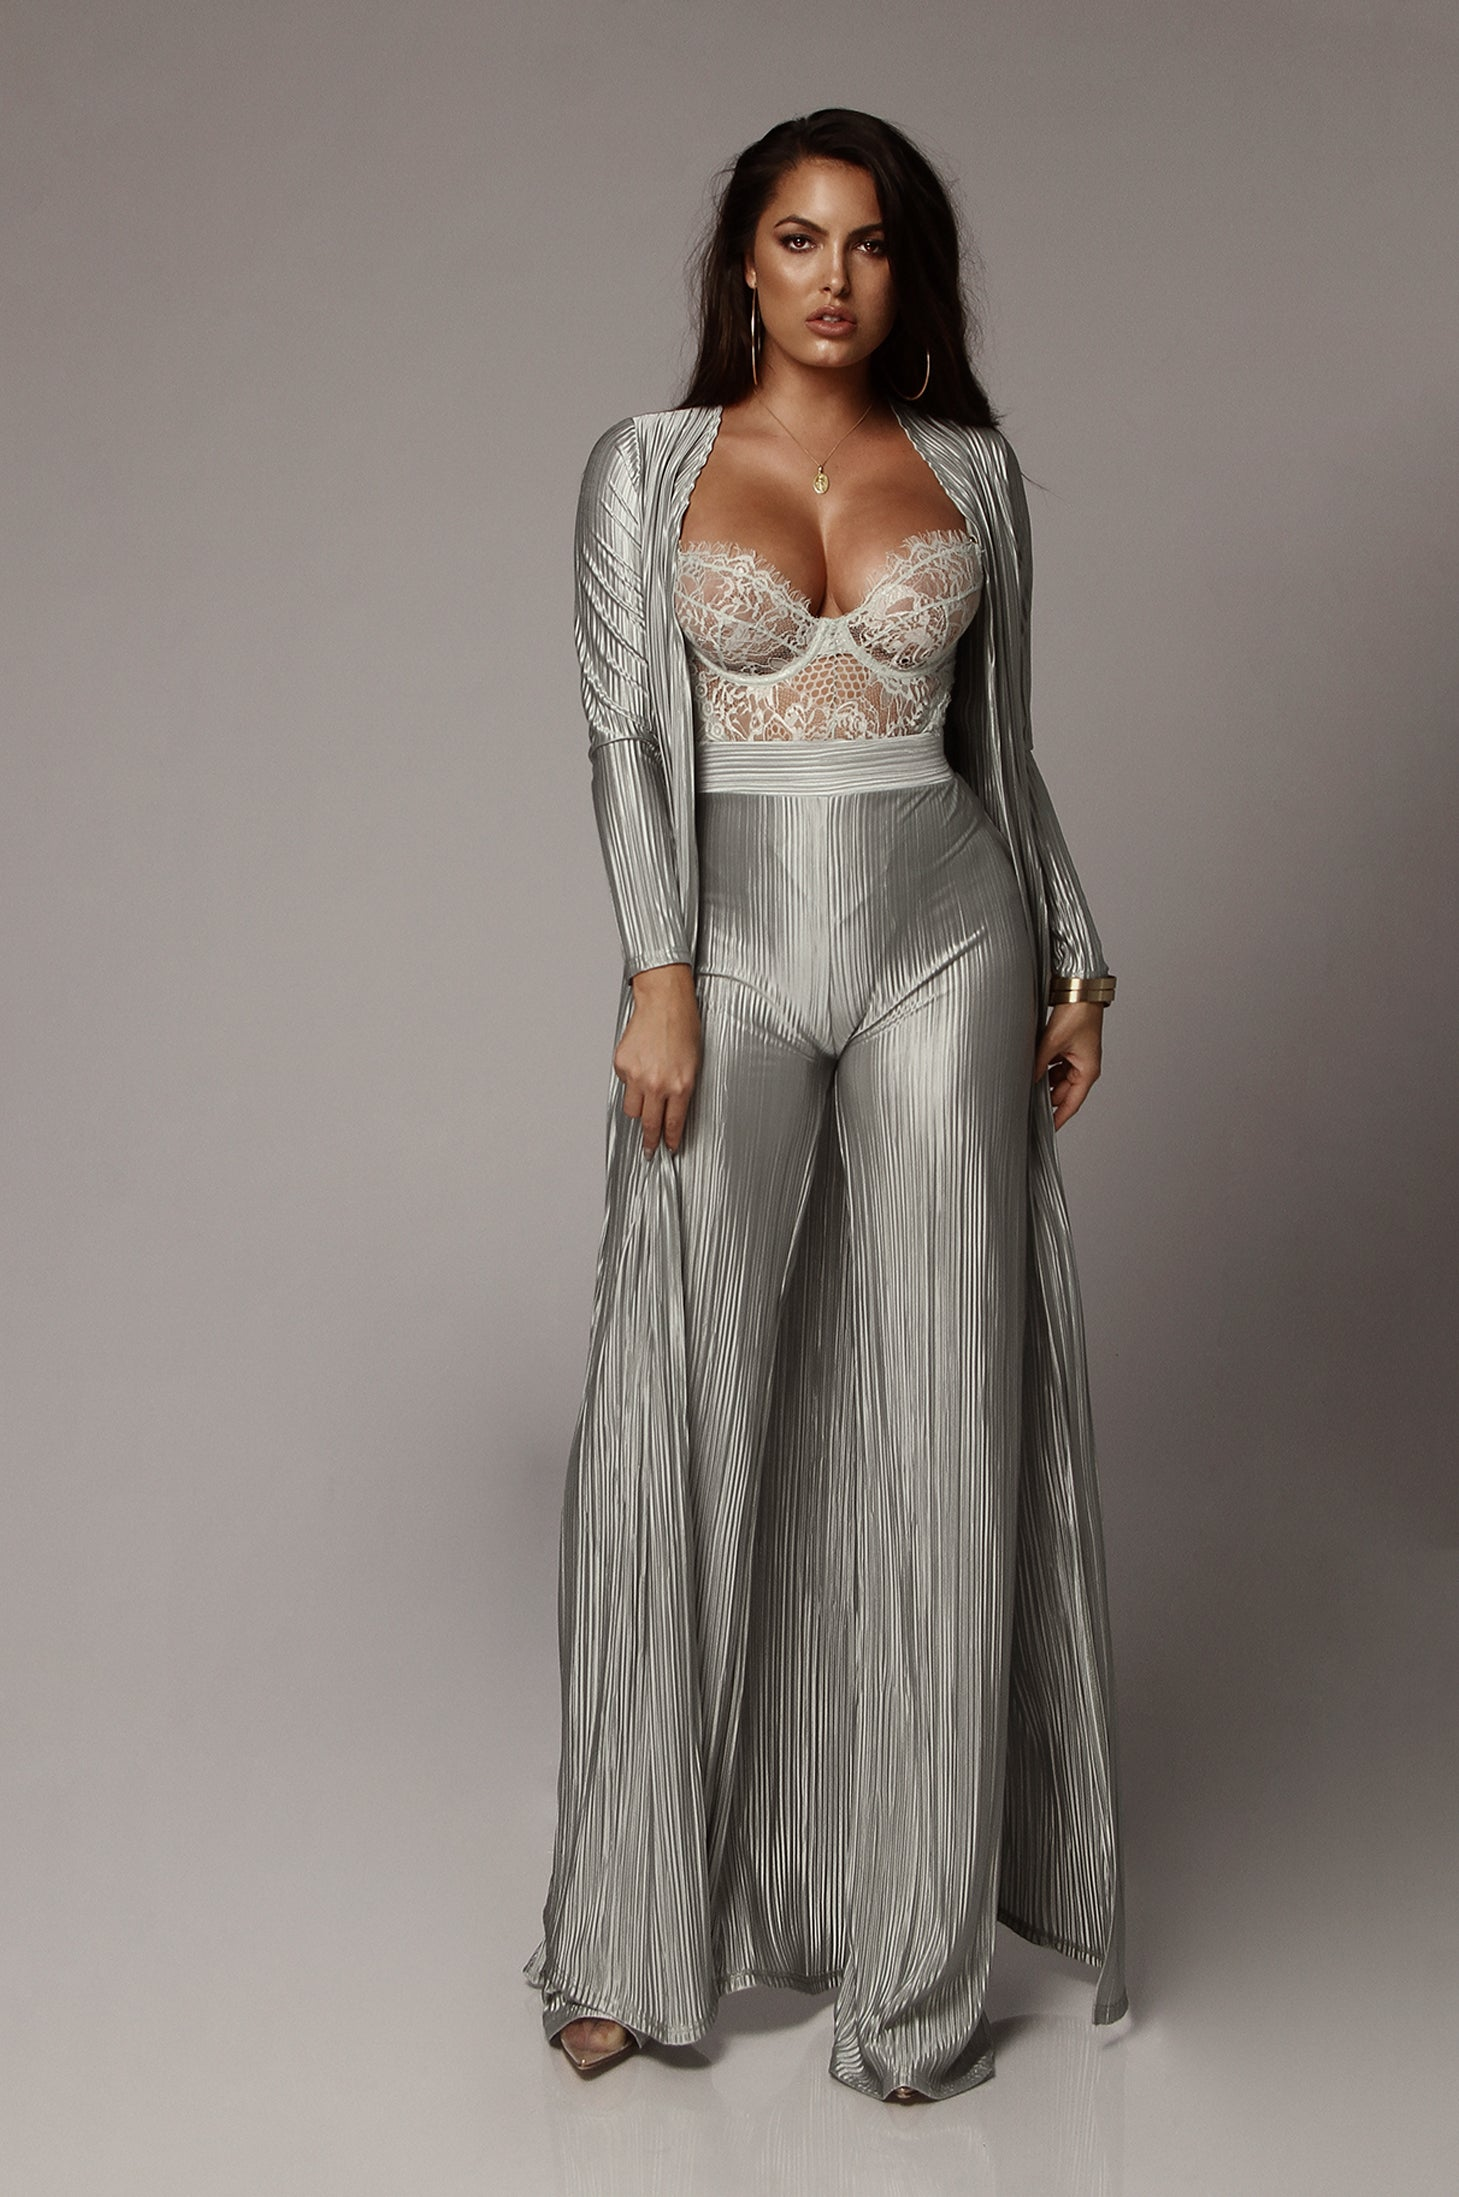 Jade Champagne Draped Duster